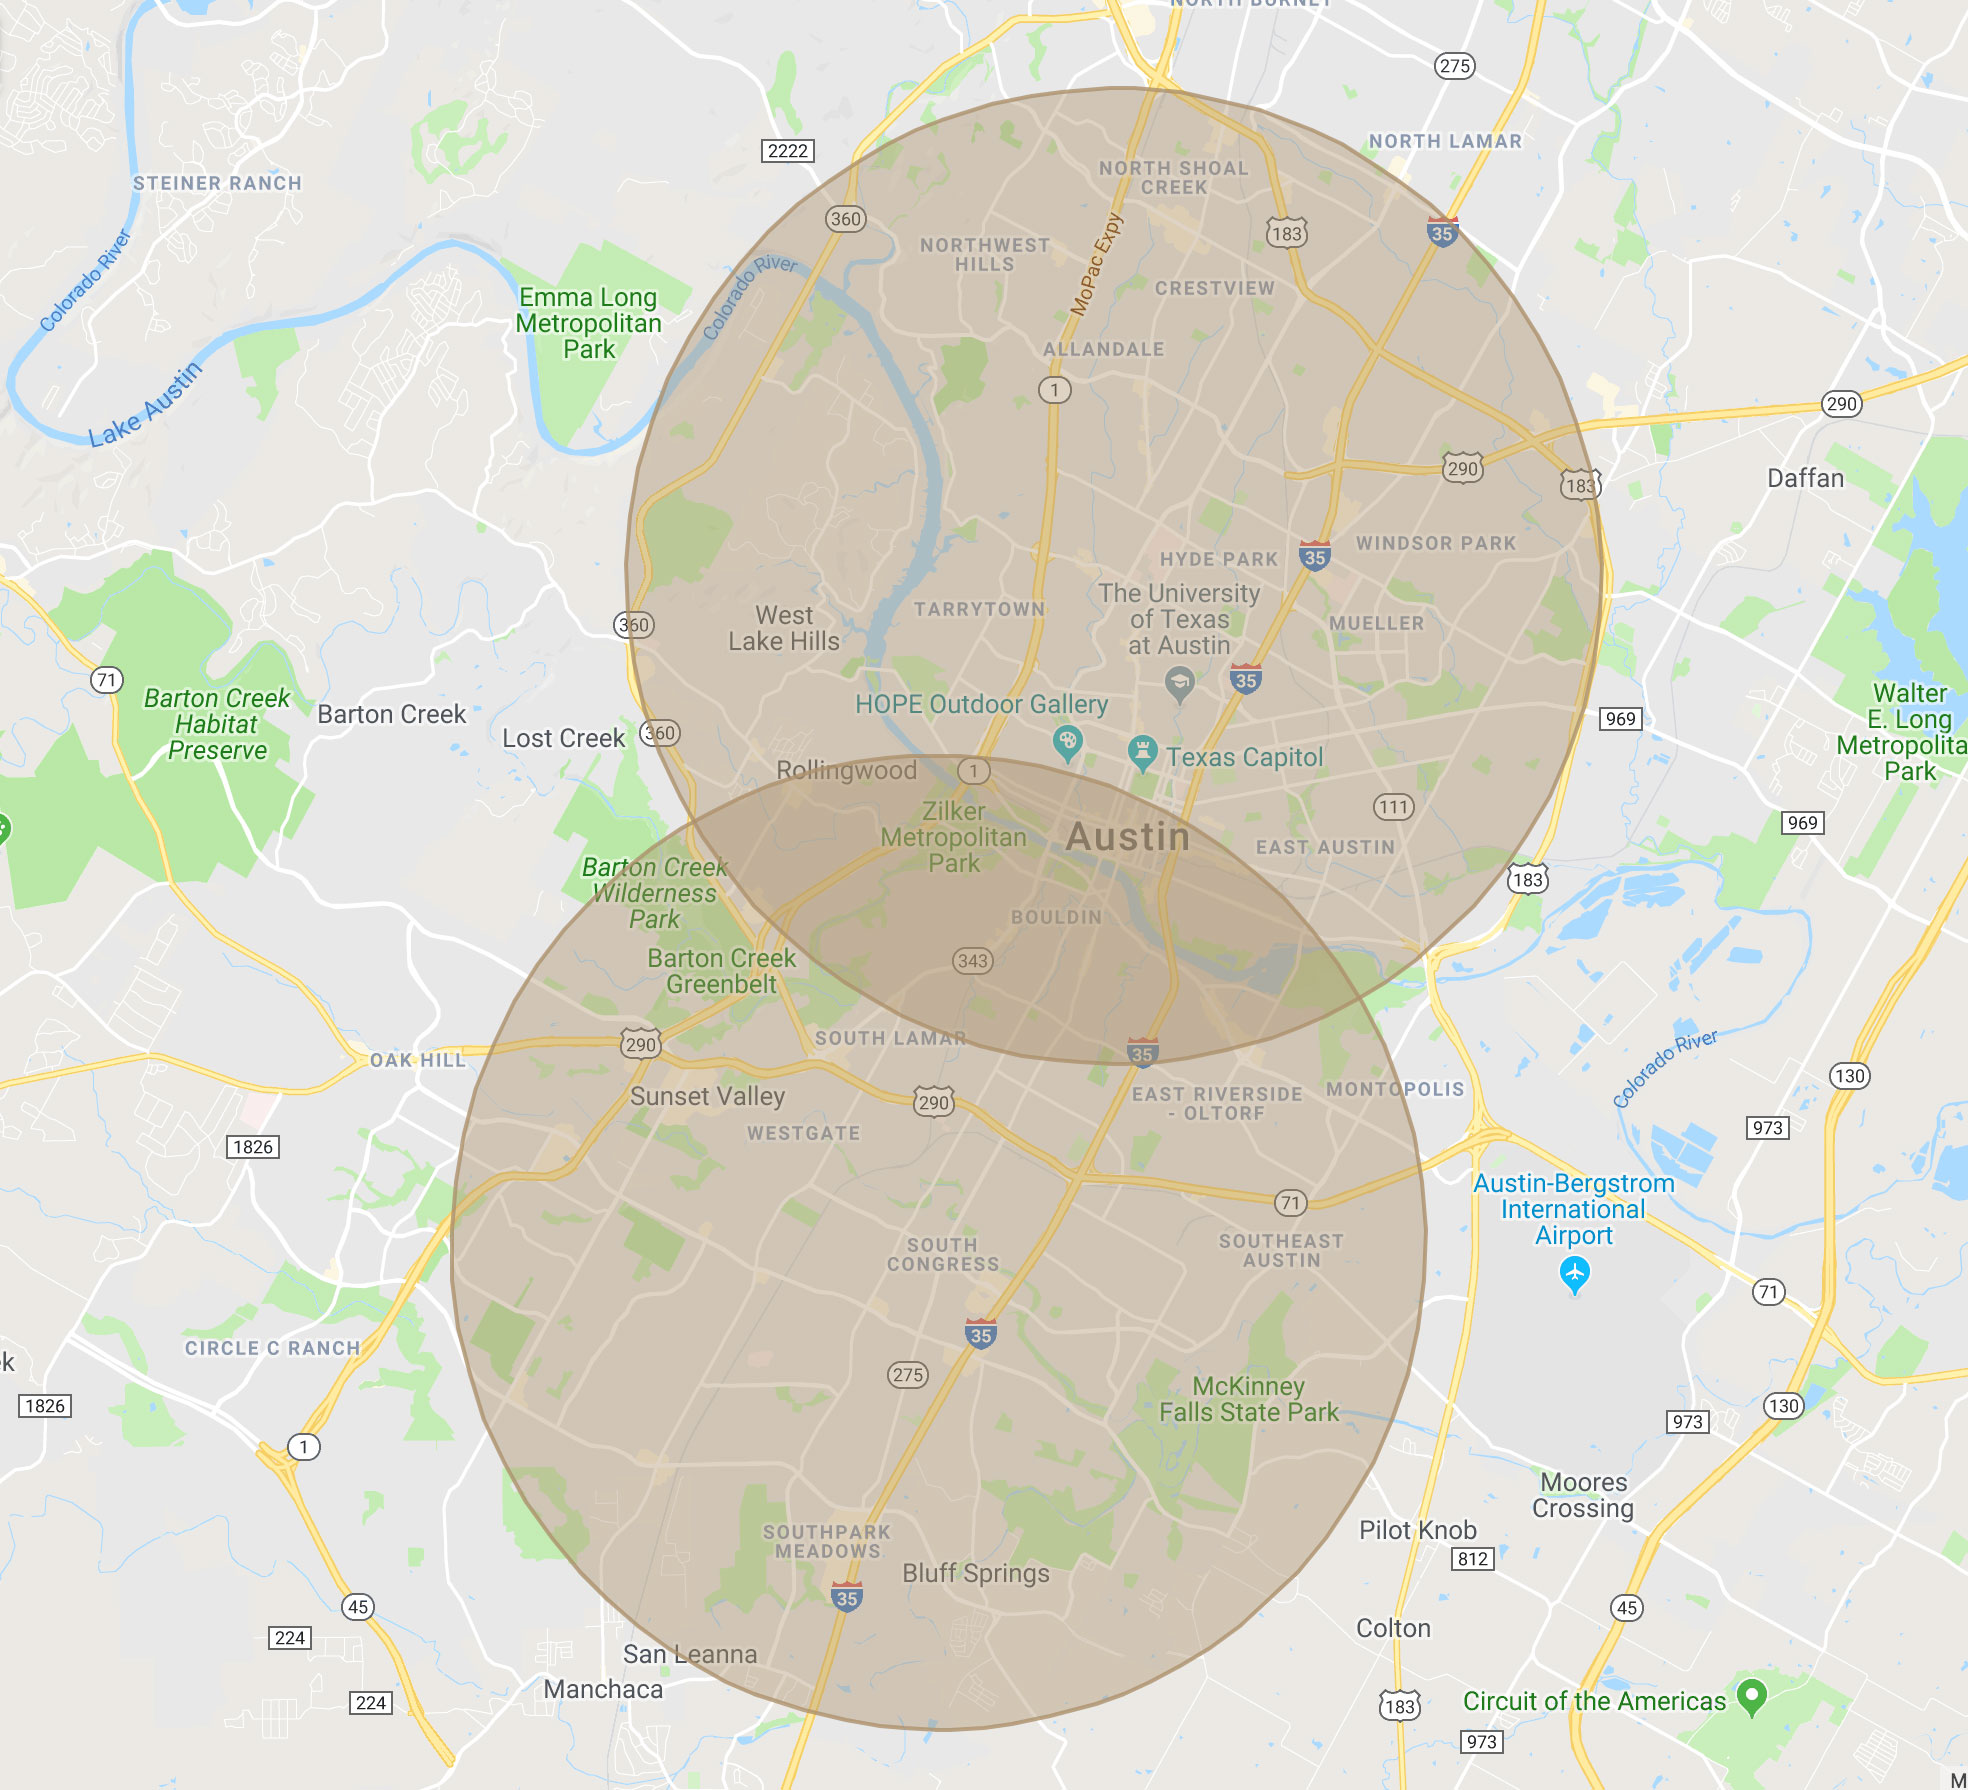 Travel fees radius map for The Breastfeeding Success Company